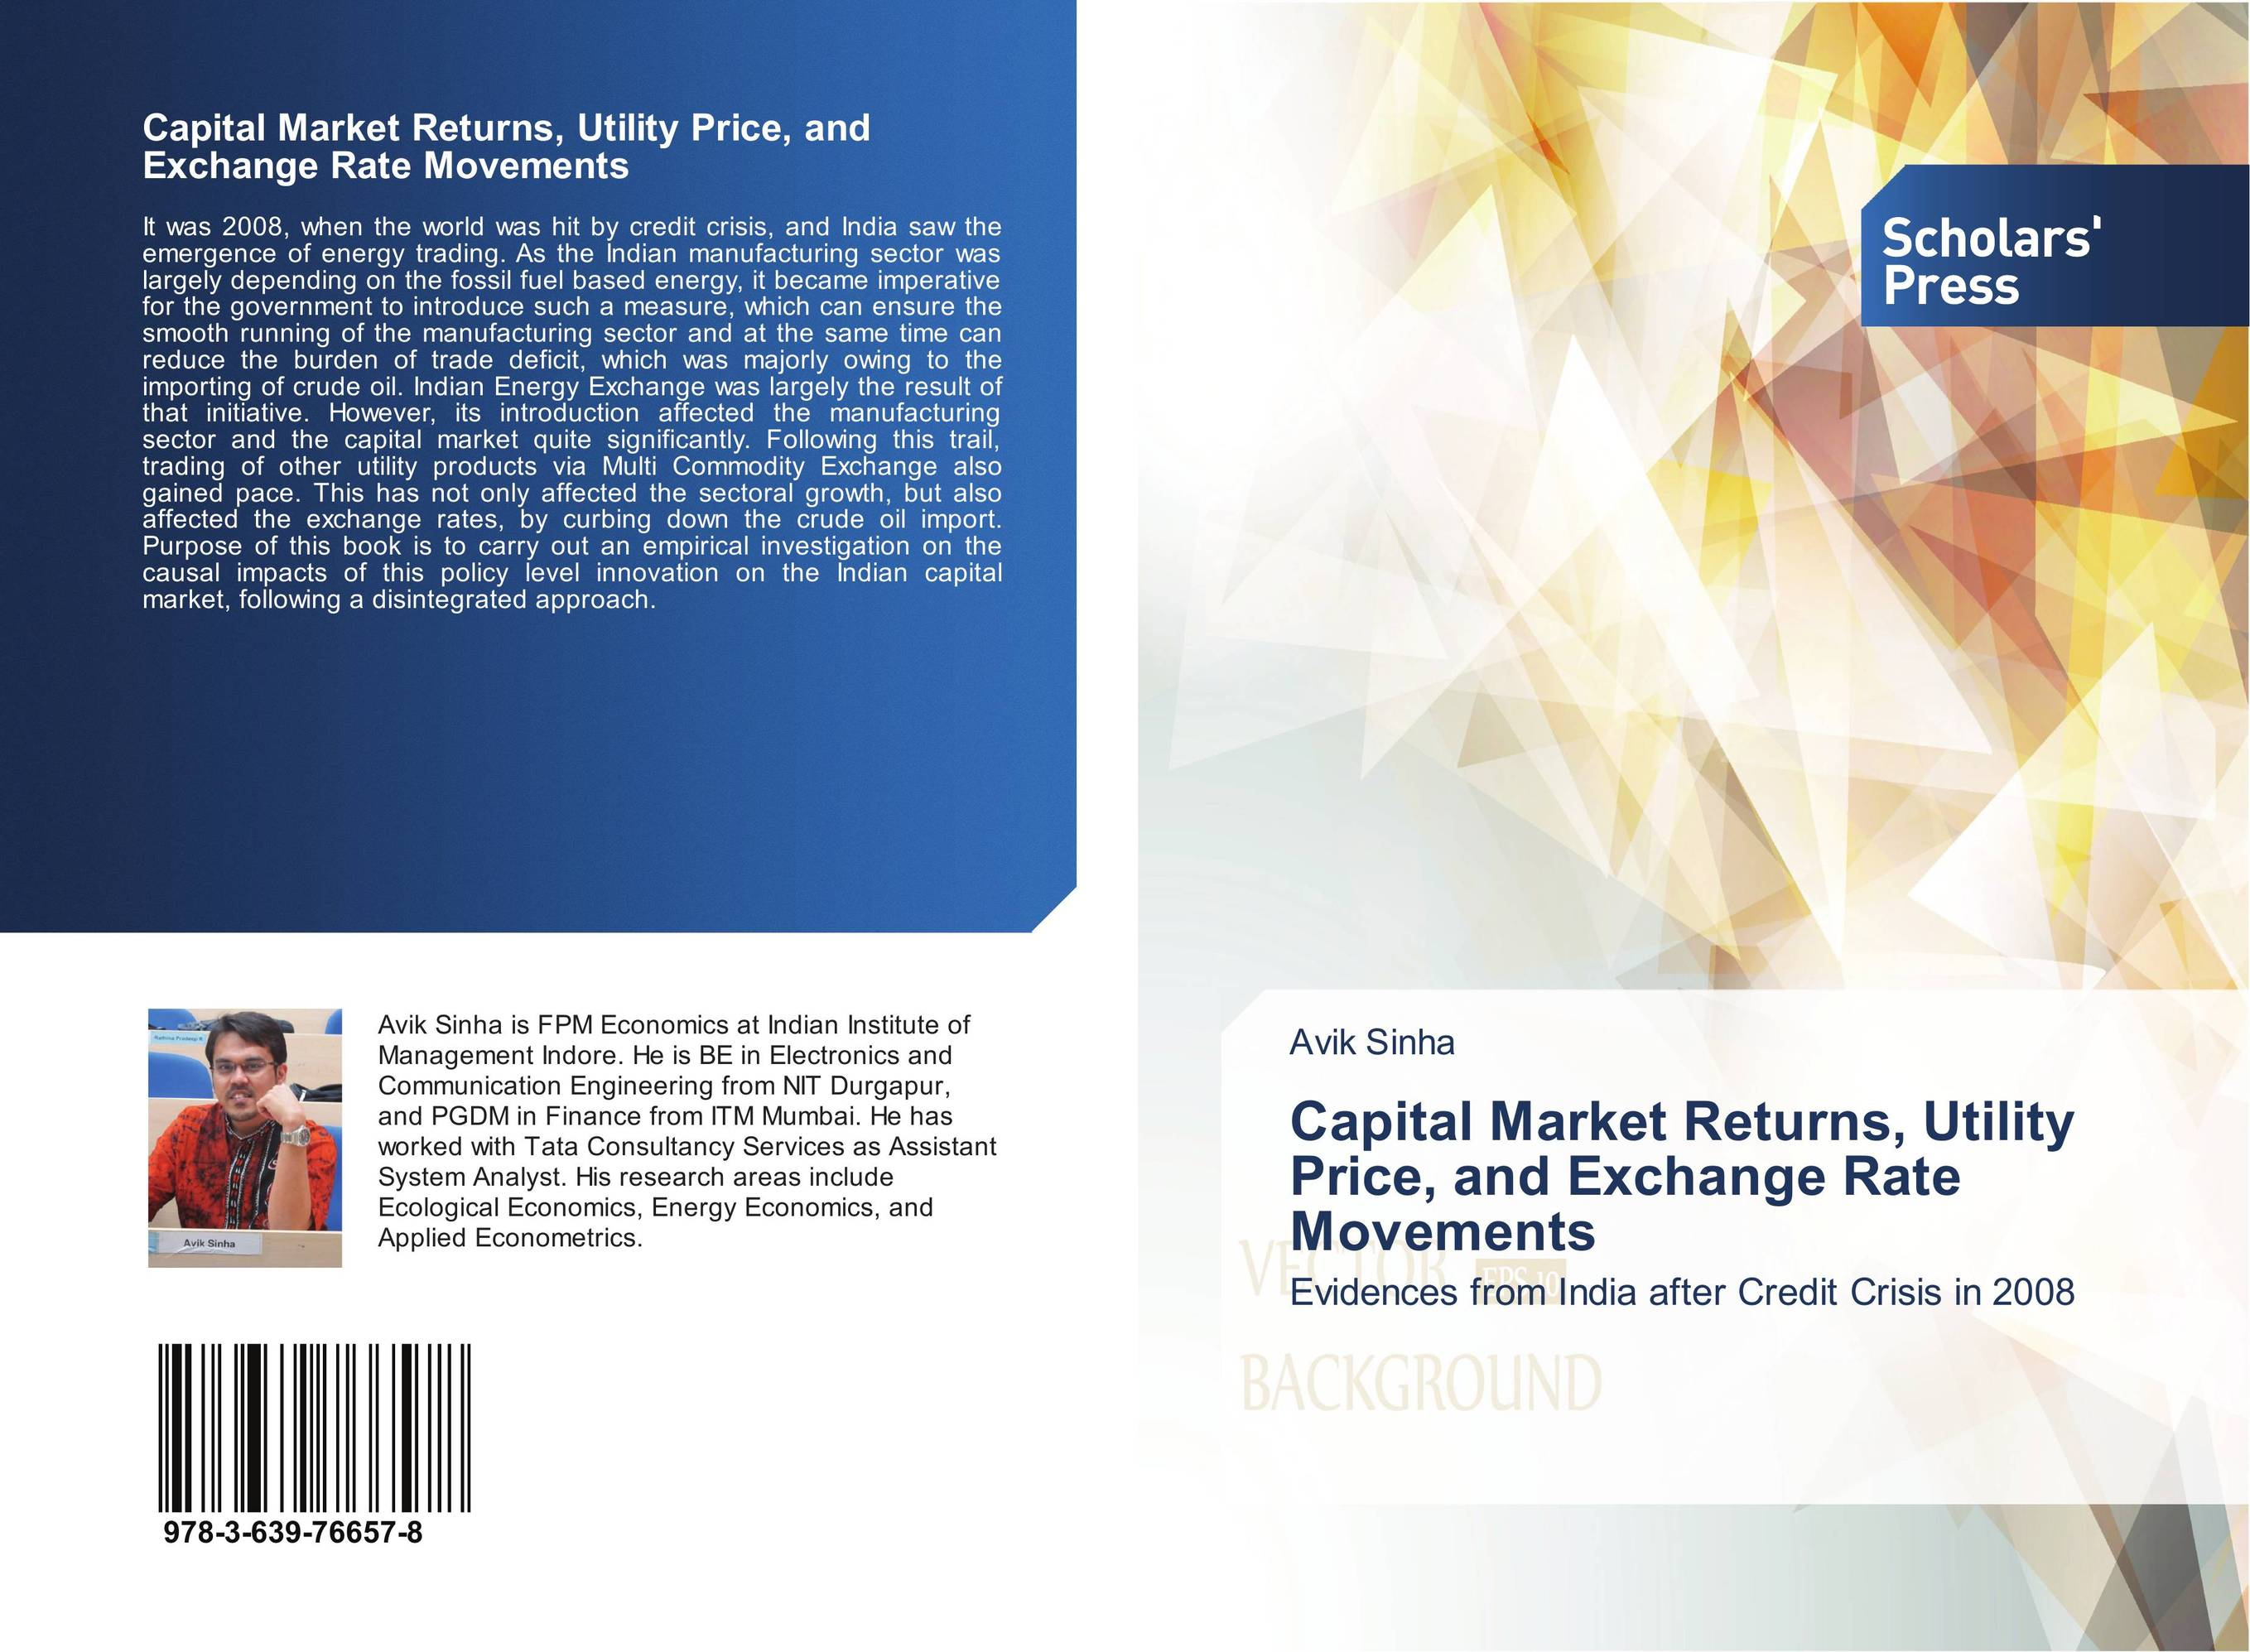 Capital Market Returns, Utility Price, and Exchange Rate Movements dearomatization of crude oil